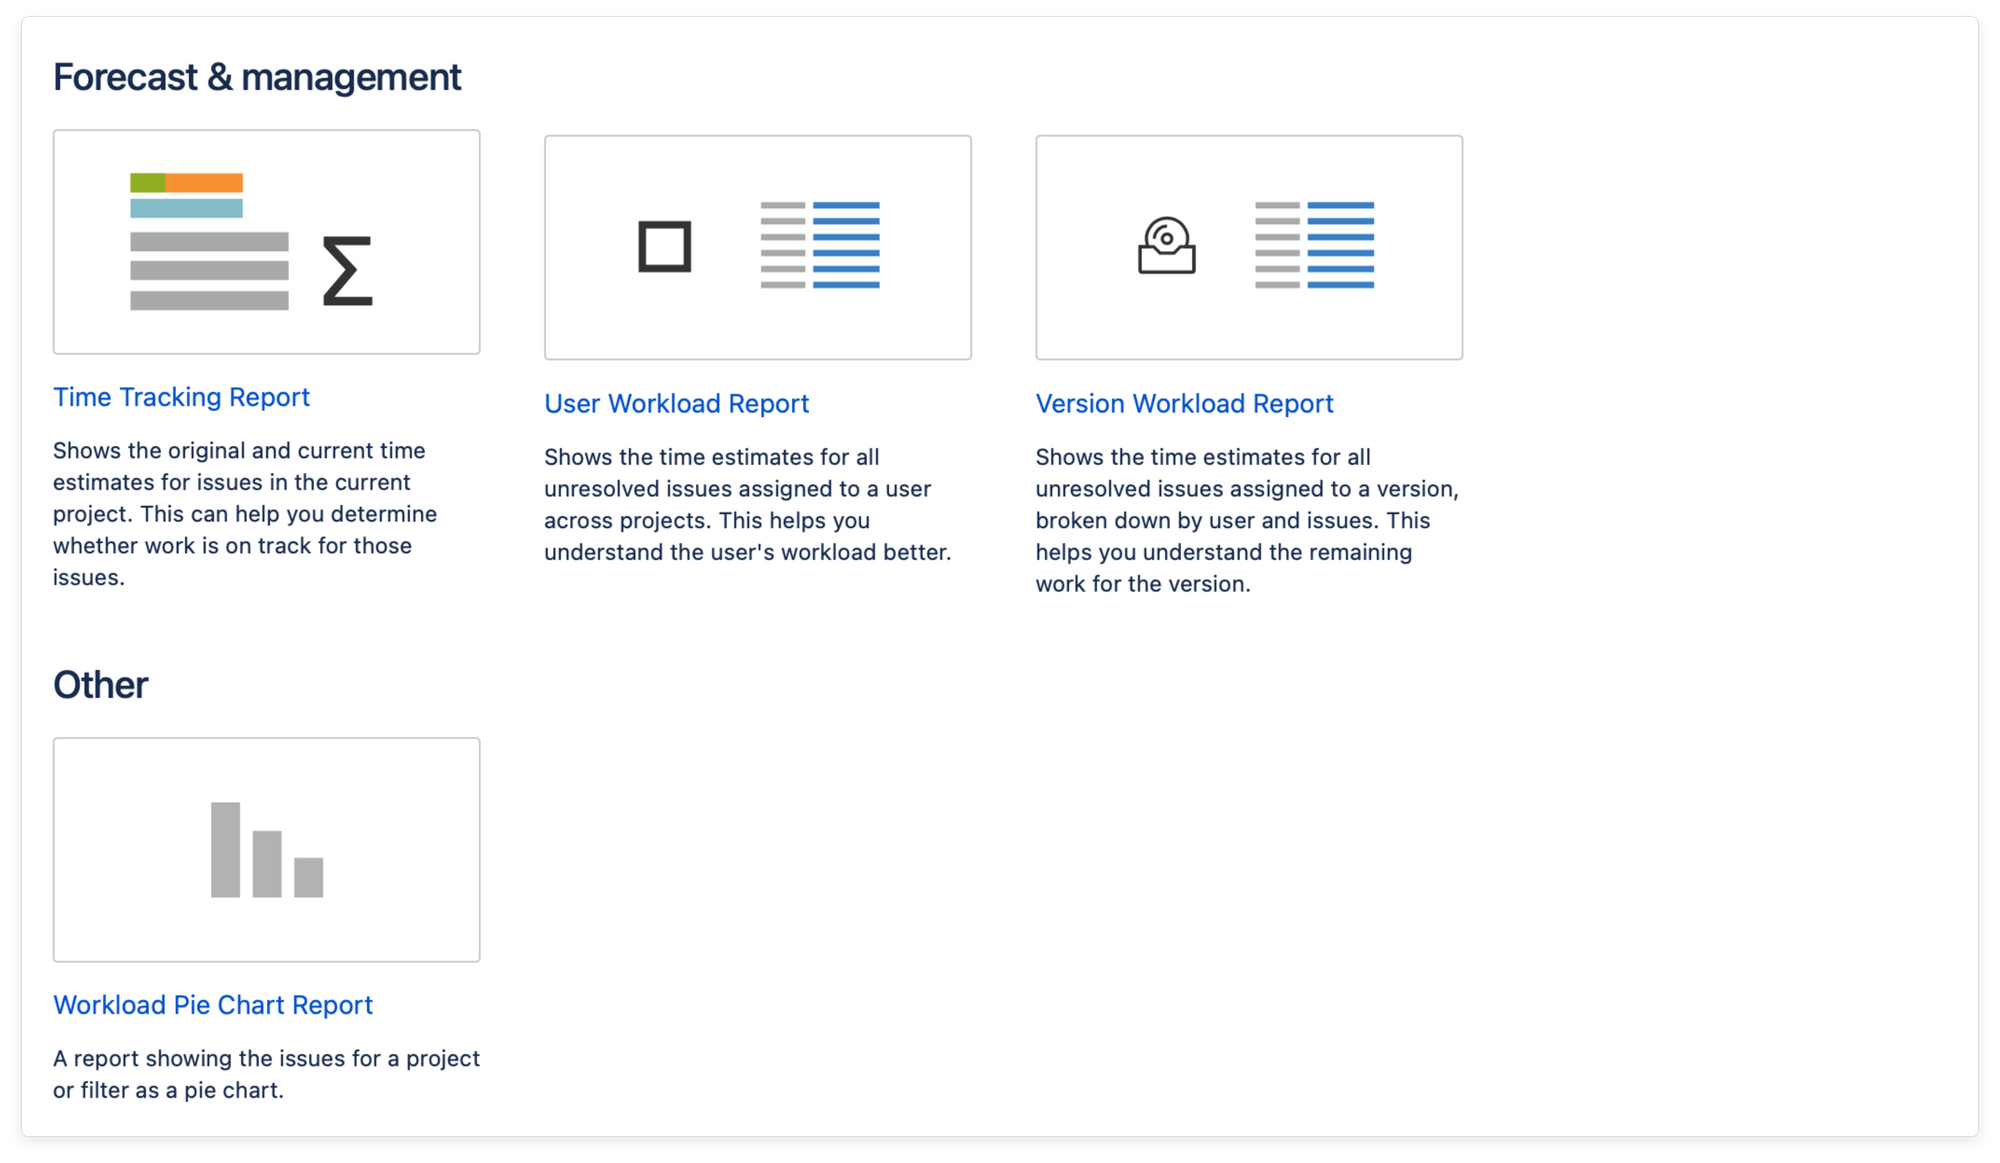 Jira forecast and management reports for projects